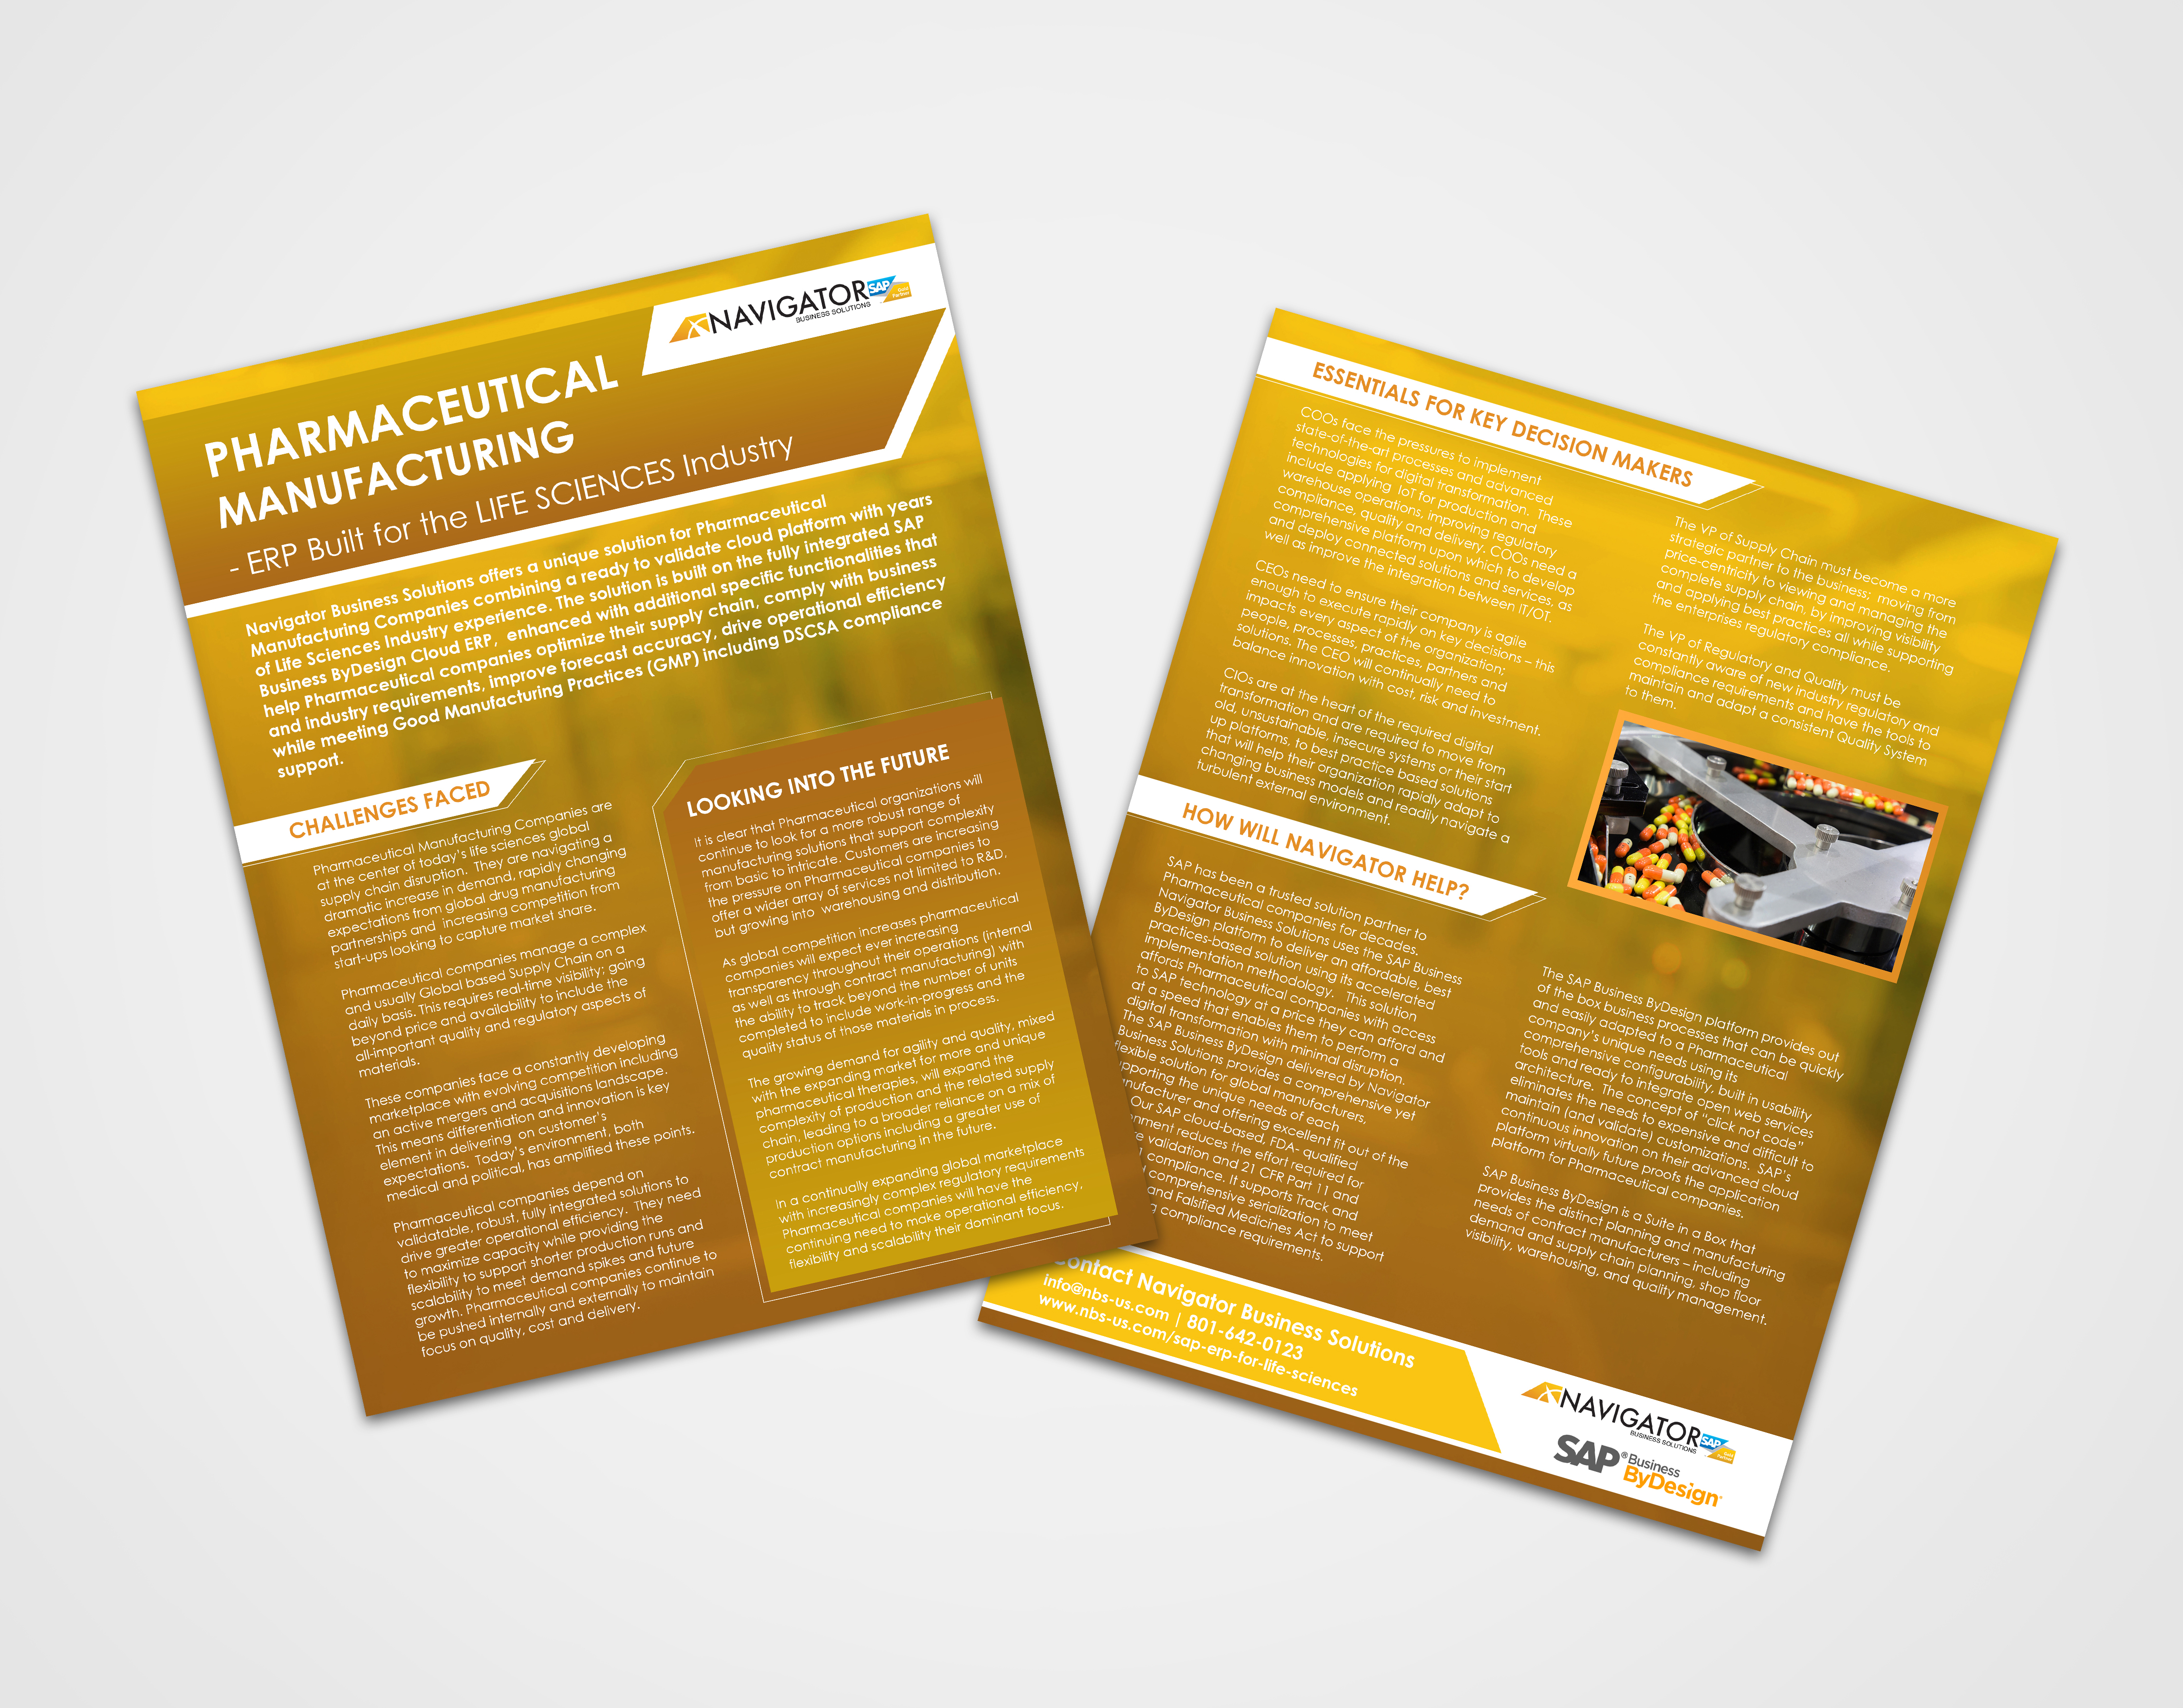 PharmaceuticalManufacturing_2pages